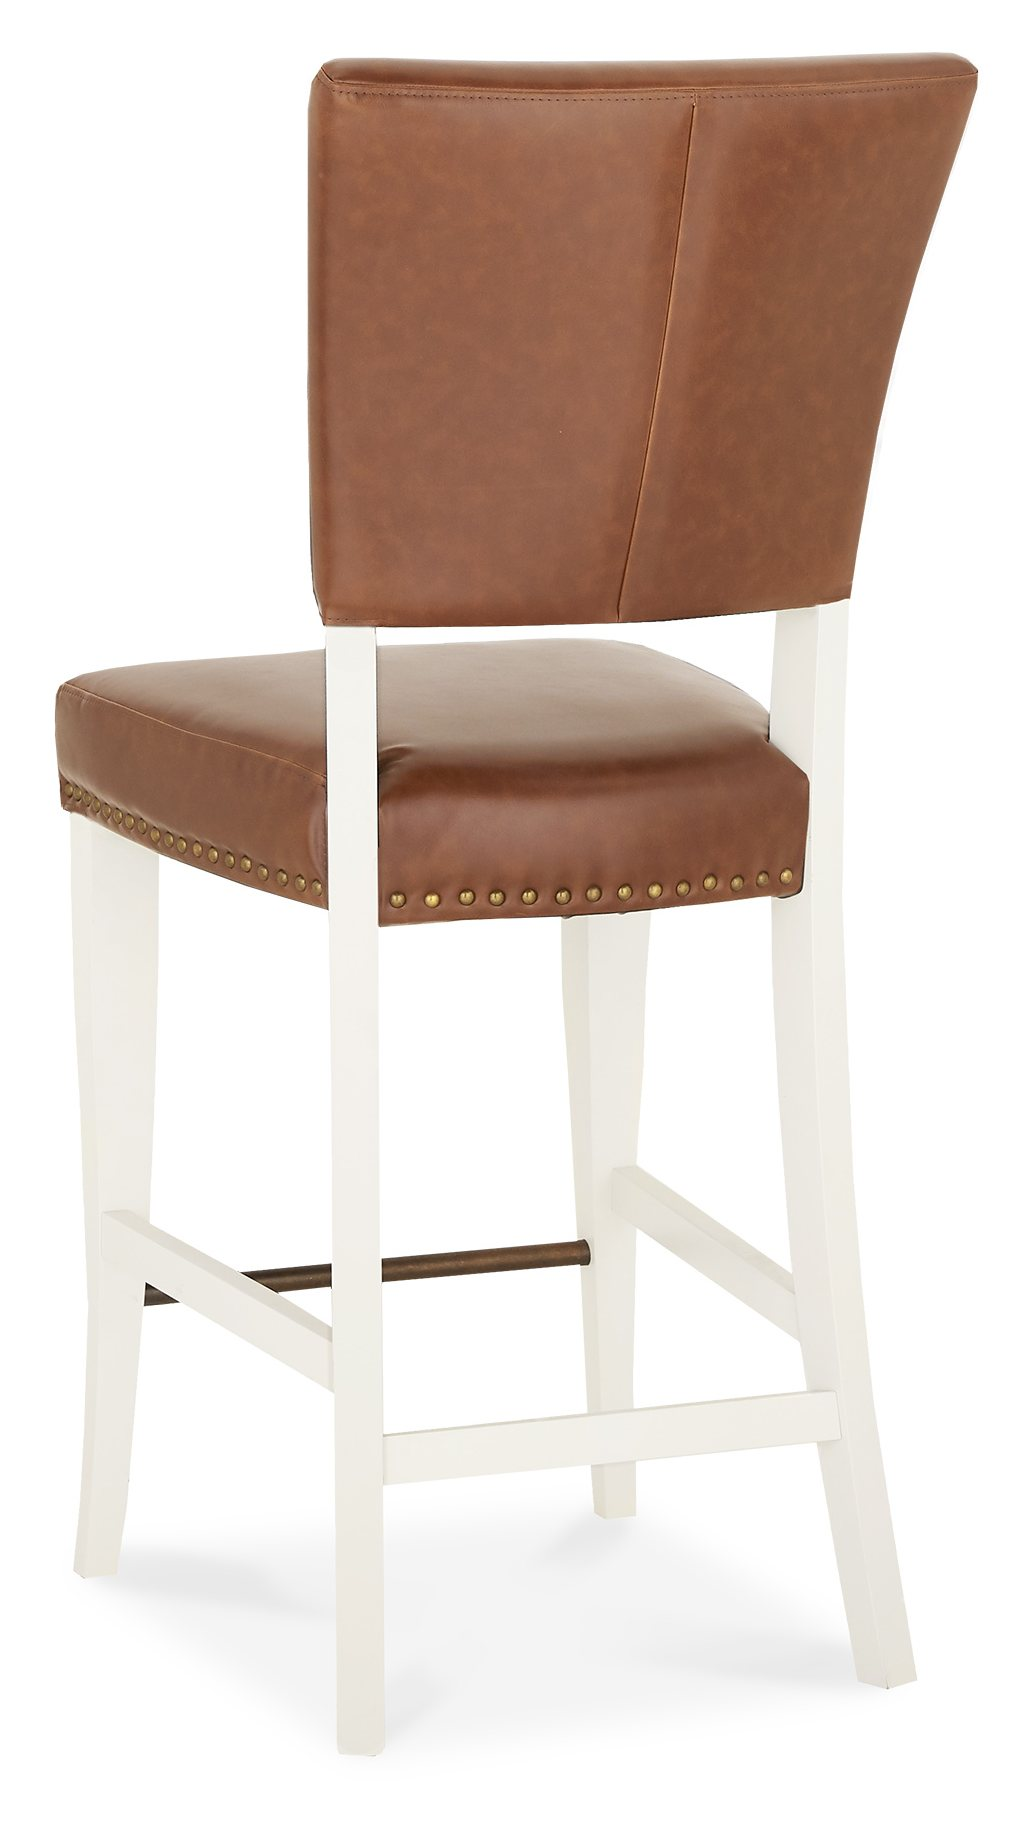 HIGHLAND IVORY STOOL - BACK DETAIL